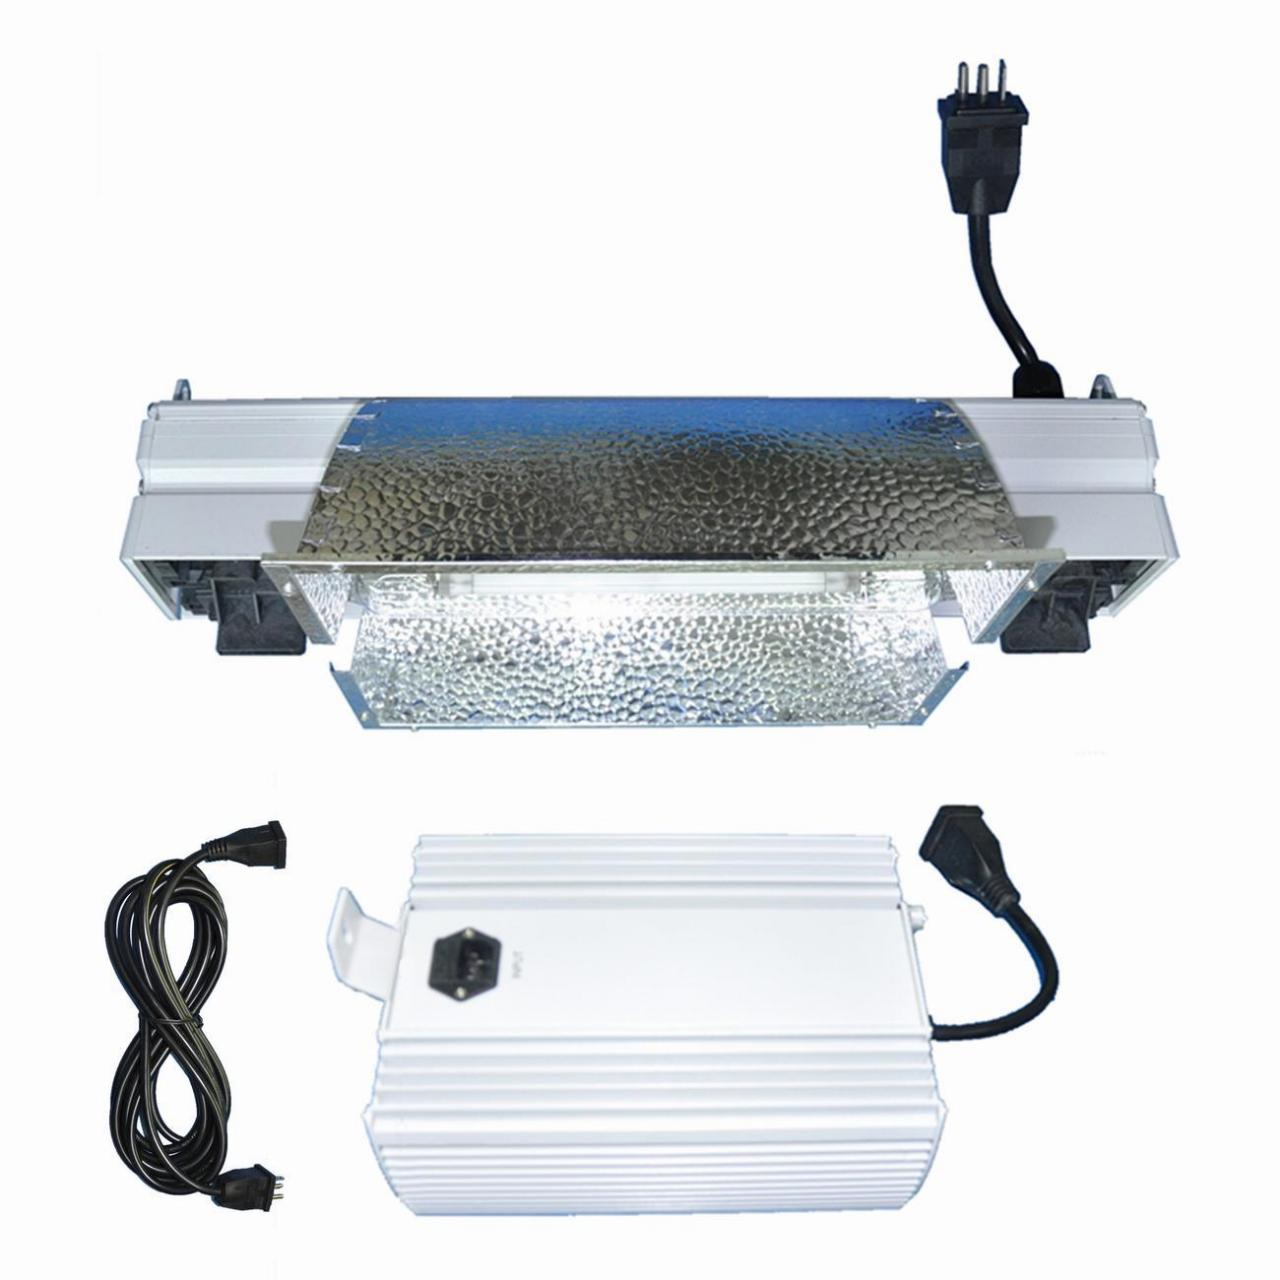 MH SERIE 1000w 100-264v double-ended grow lamp